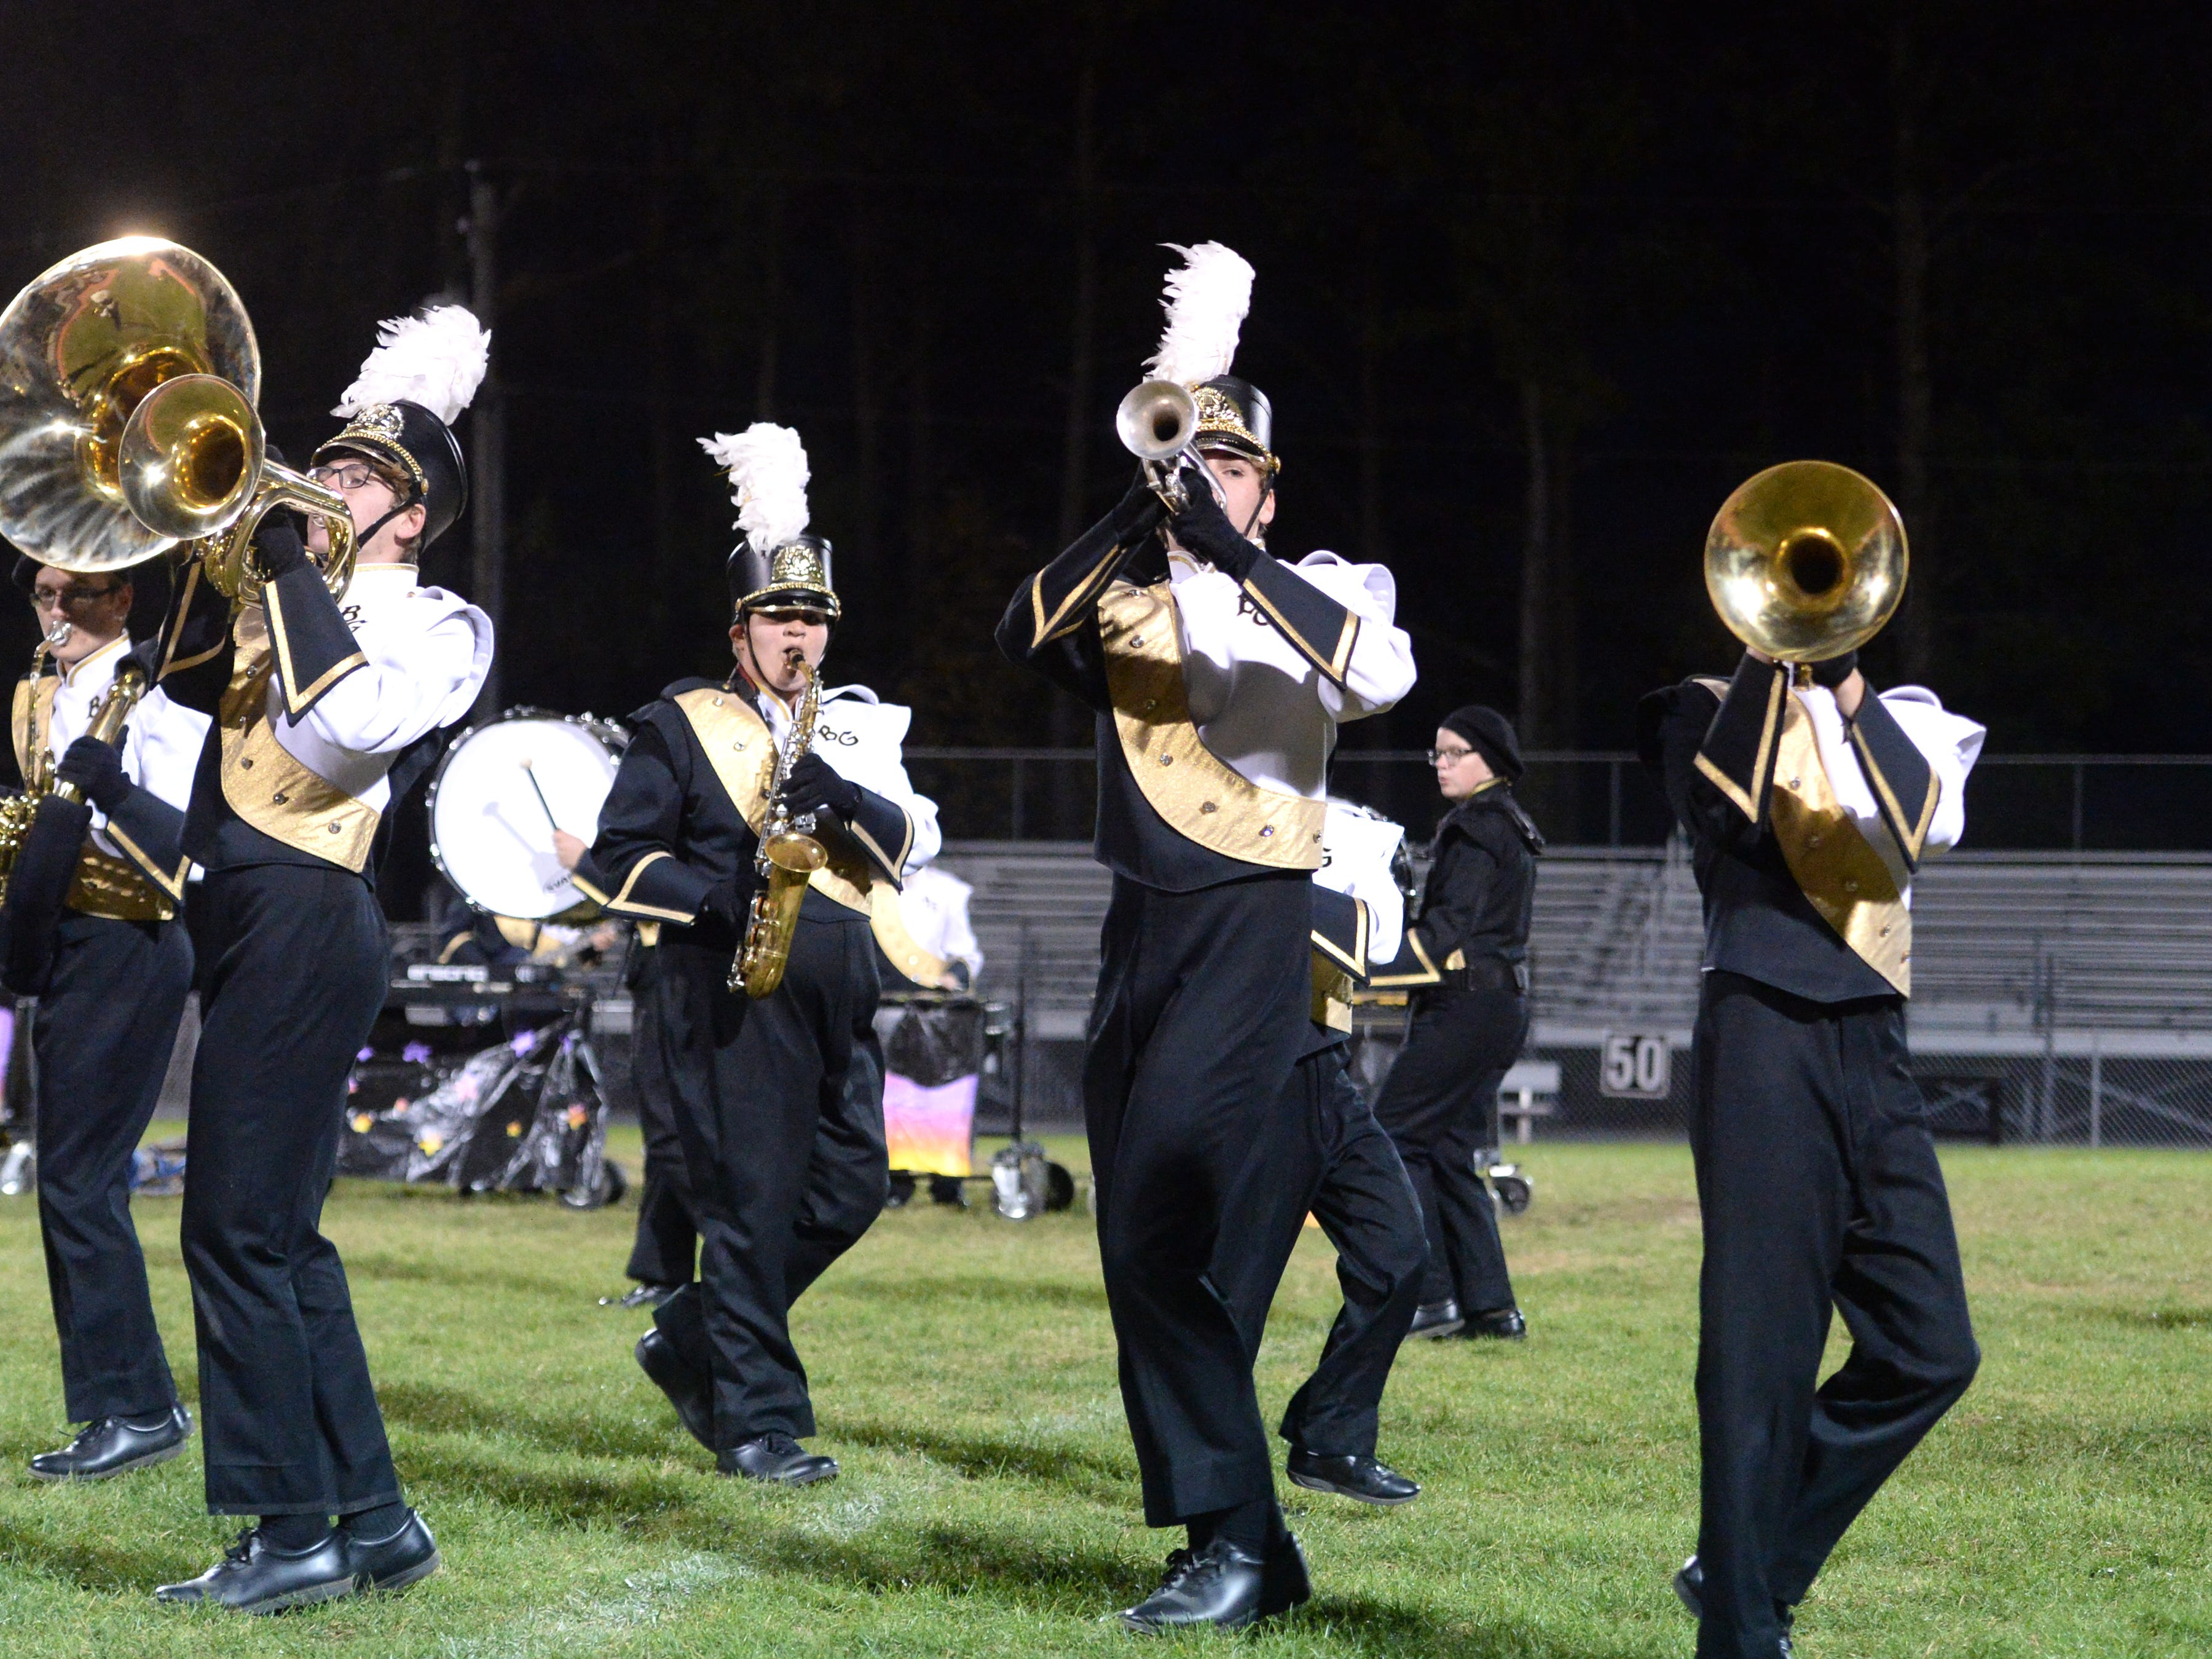 The Buffalo Gap High School band performs during the Valley Showcase Tuesday at Riverheads.